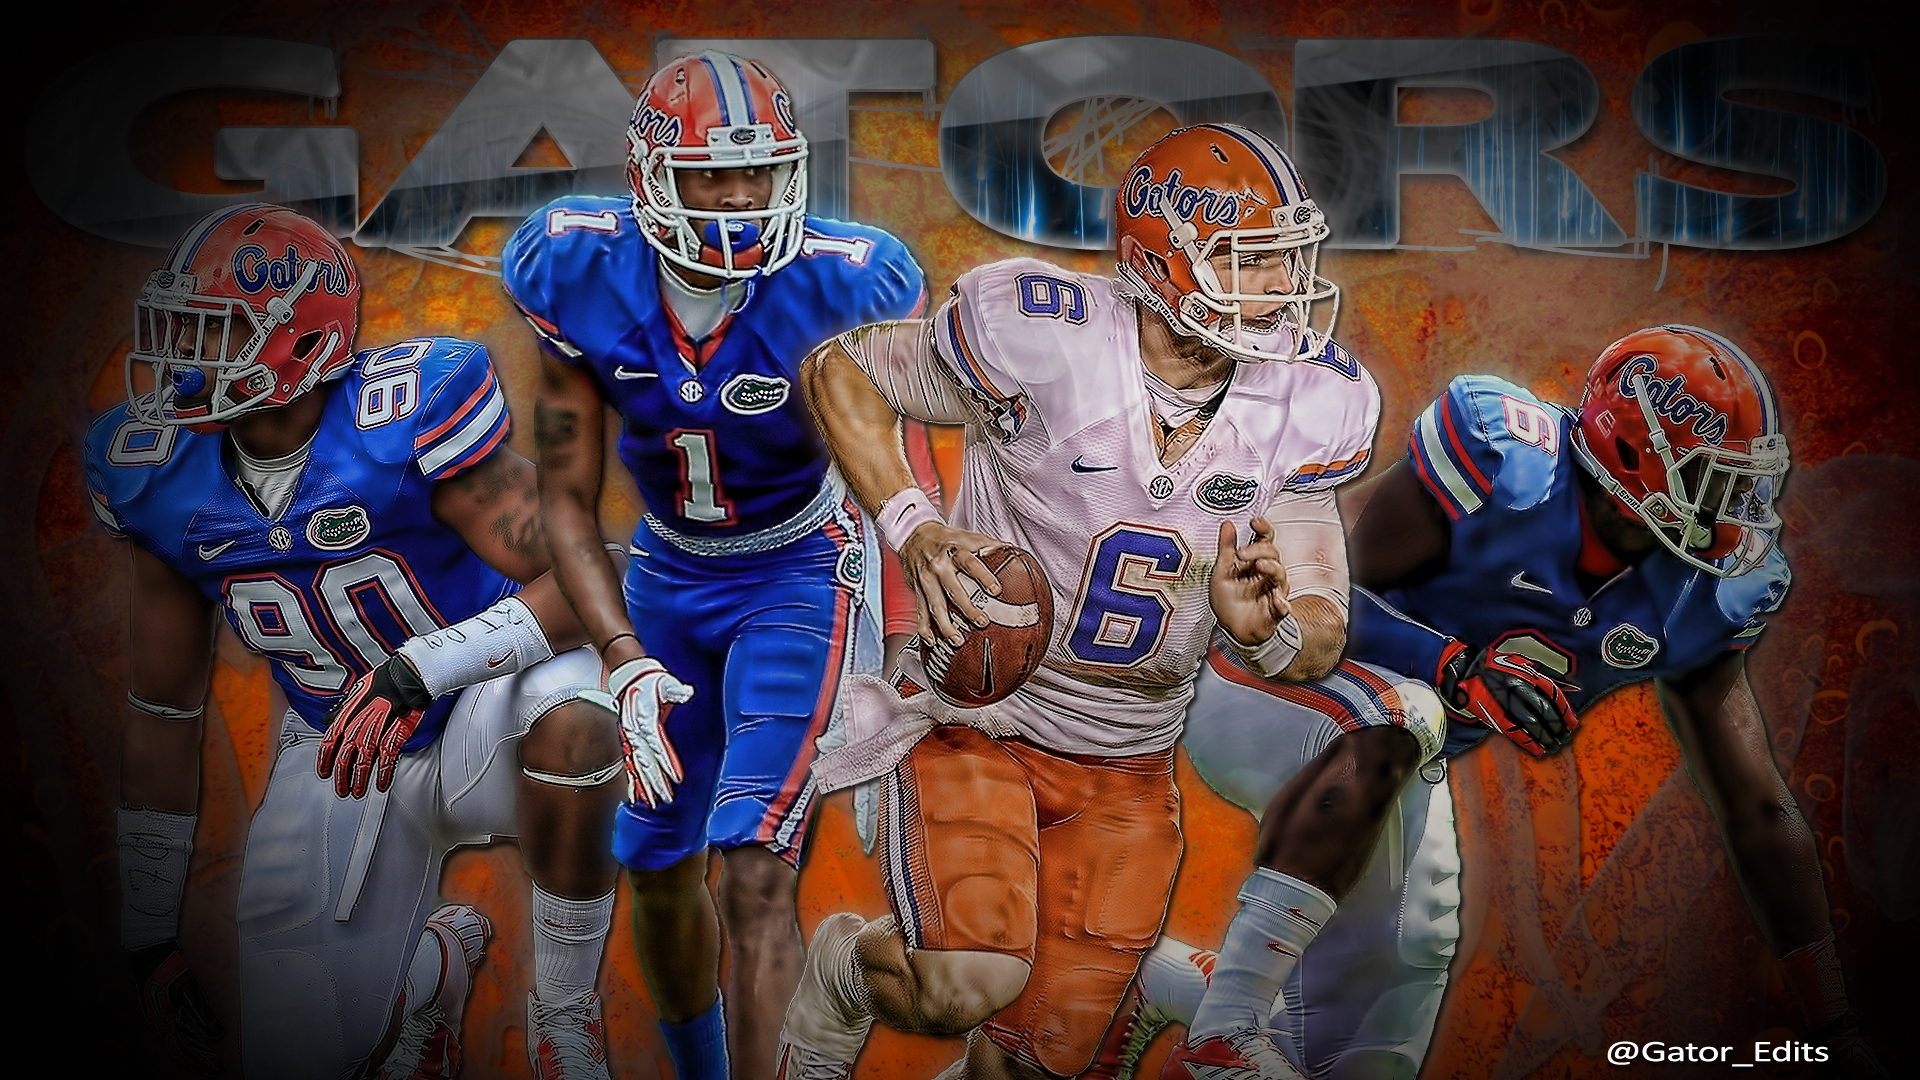 Florida Gators Football Wallpaperjagstownville On Deviantart Regarding Florida Gator Wall Art (Image 10 of 20)